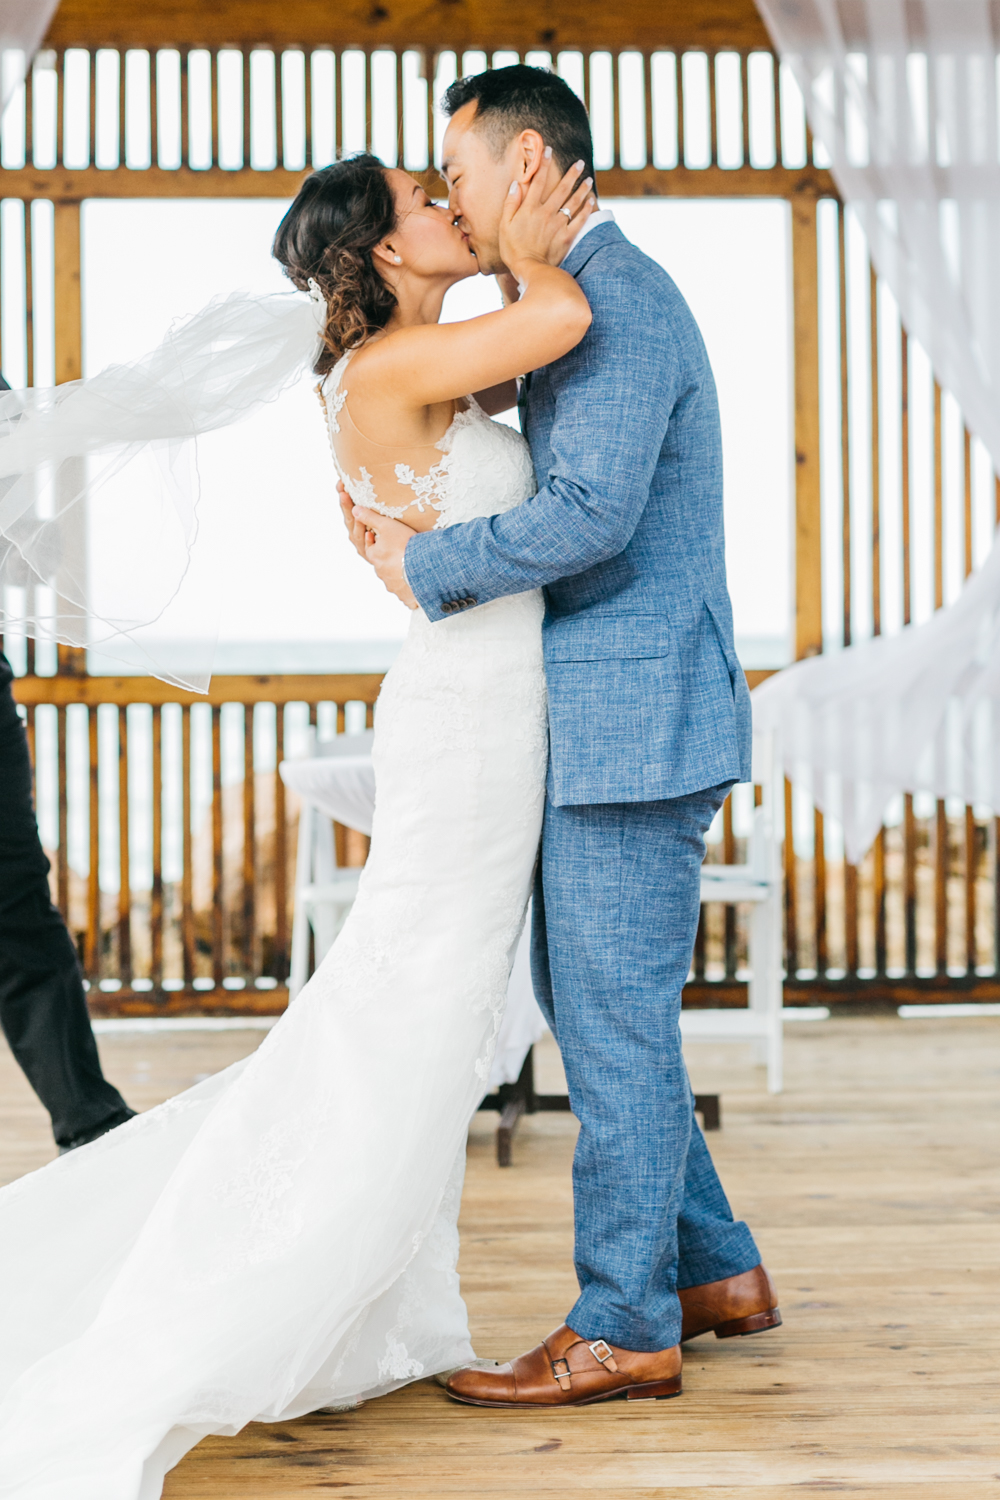 Bride and groom's first kiss at Royalton White Sands Resort in Jamaica